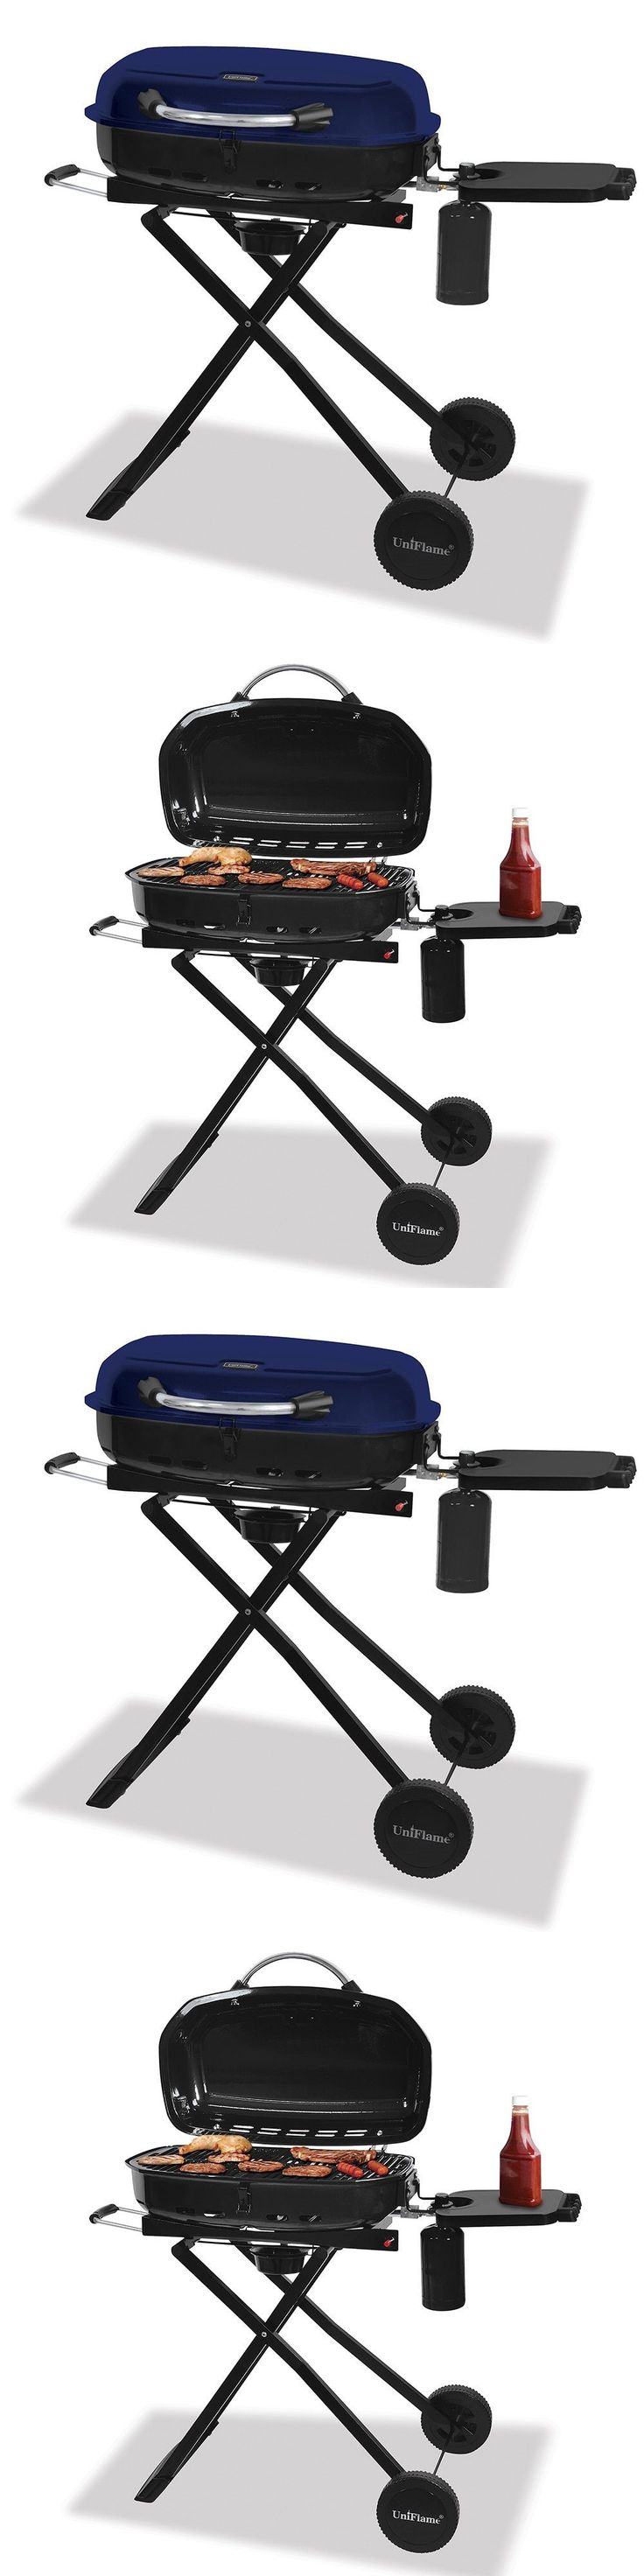 Camping BBQs and Grills 181388: Portable Gas Grill Bbq Barbeque Tail Party Propane Flame Burner Blue Rhino Btu -> BUY IT NOW ONLY: $166.95 on eBay!